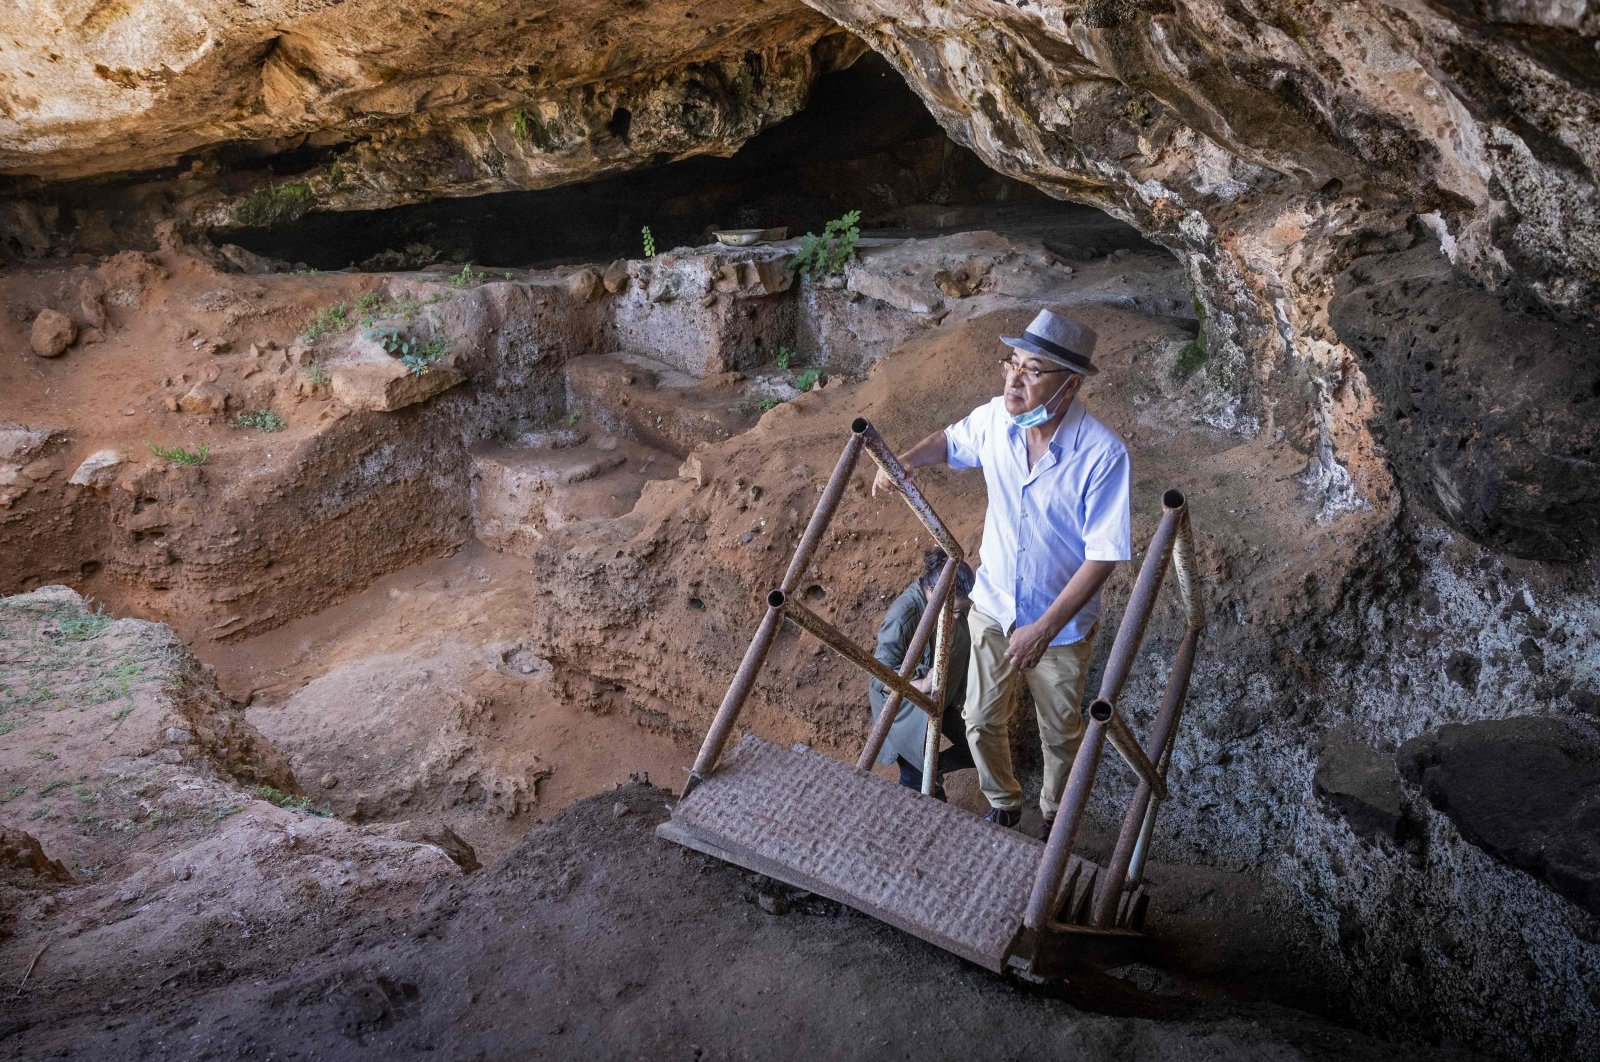 Archeologists walk to enter the Contrebandiers (Smugglers) Cave less than 20 kilometers from the Moroccan capital Rabat, Sept. 18, 2021. (AFP Photo)